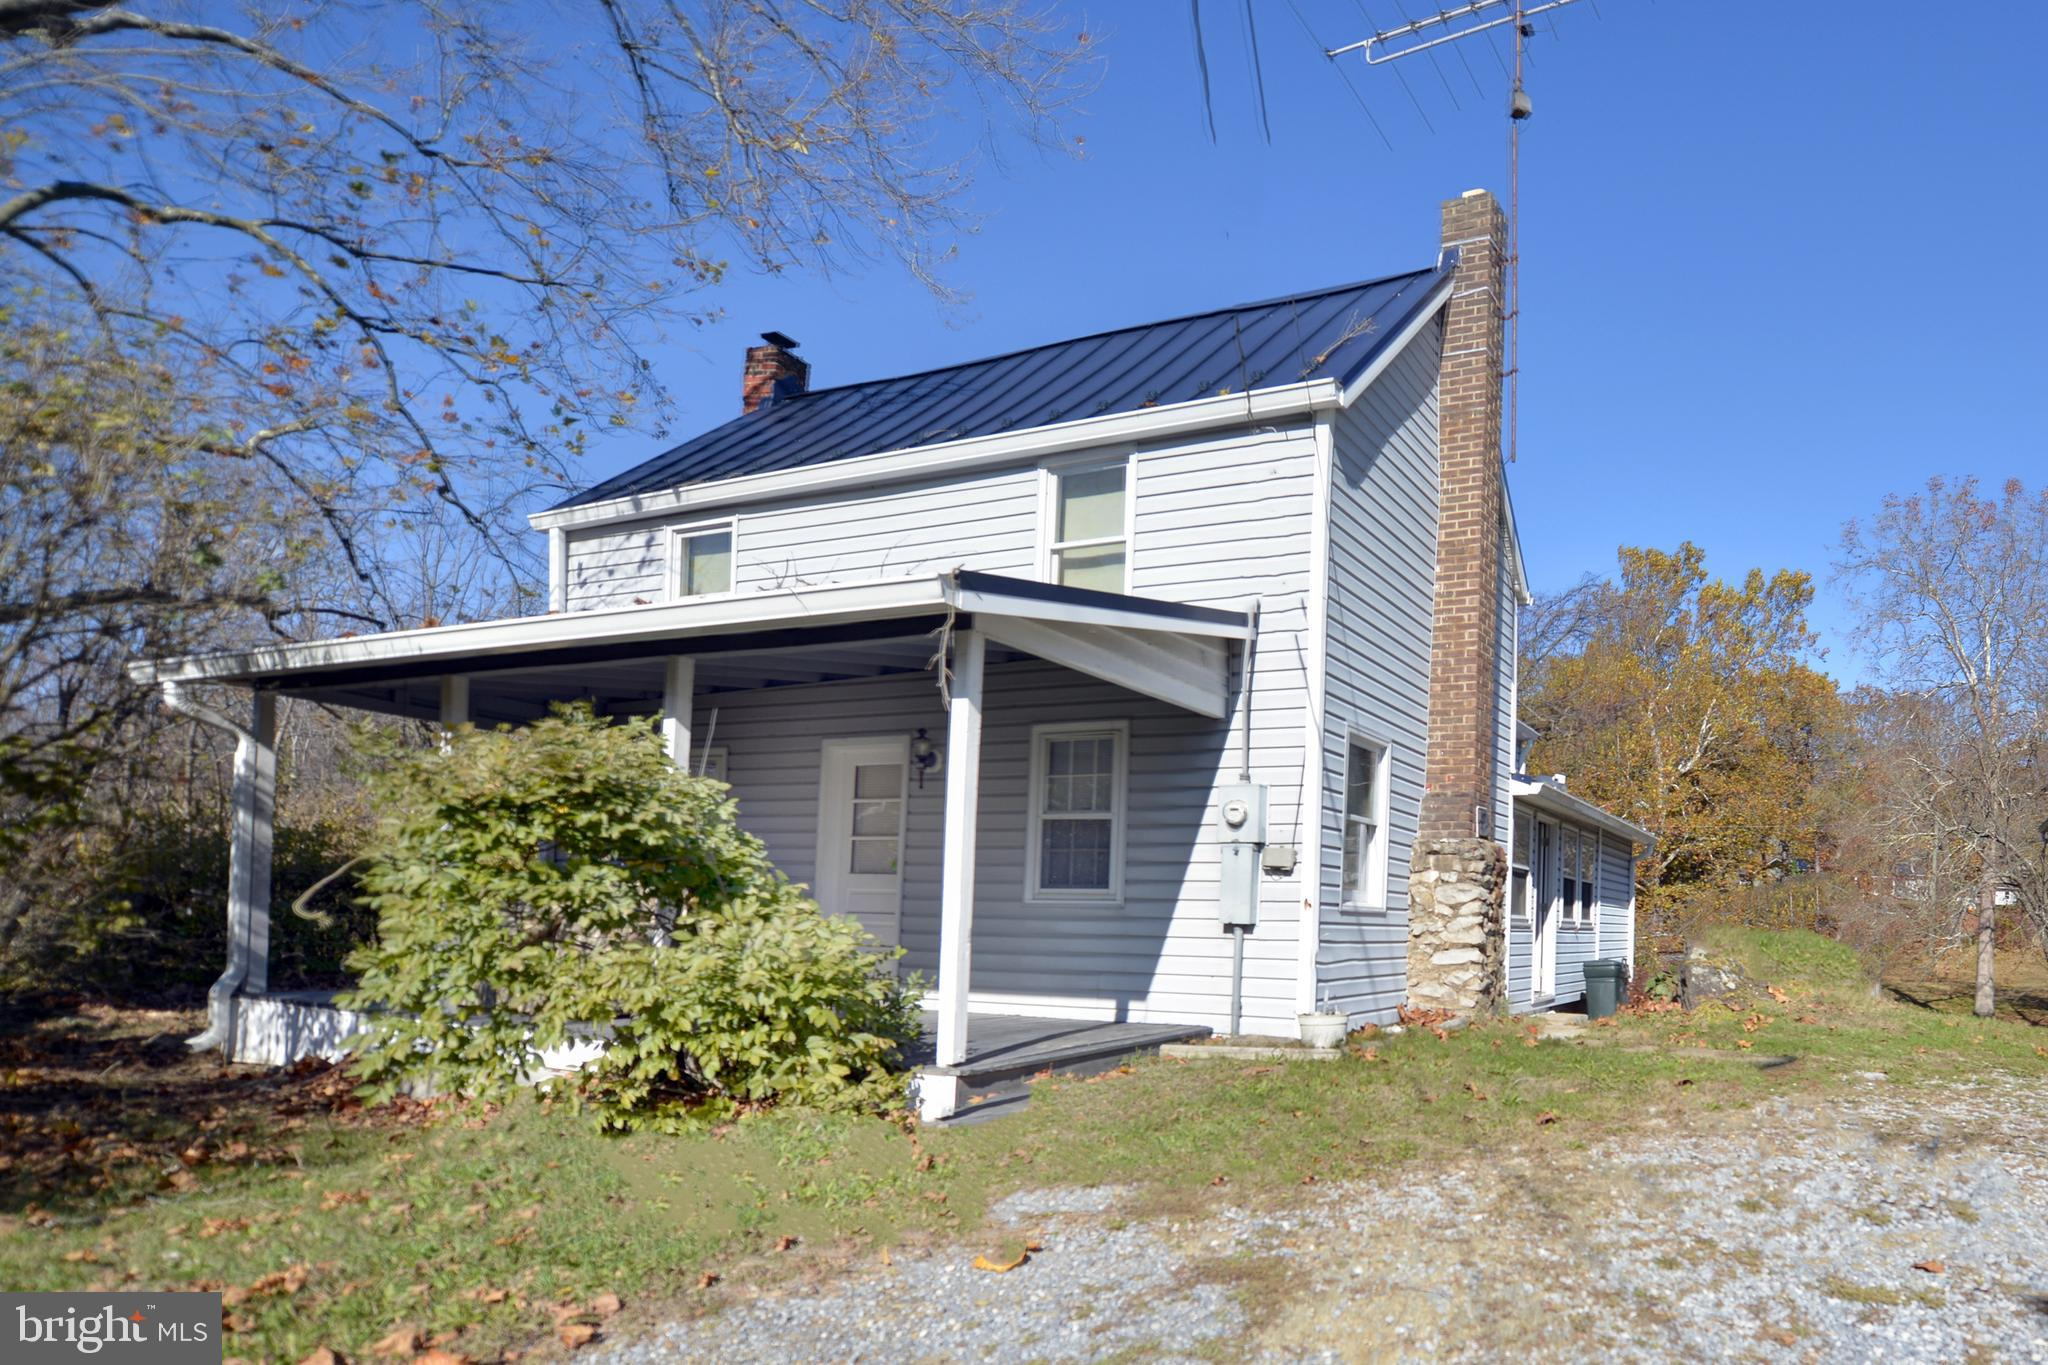 Cute farmhouse with over 1,400 sq. ft., 2 bedrooms, and 2 full bathrooms. Family room with a wood st